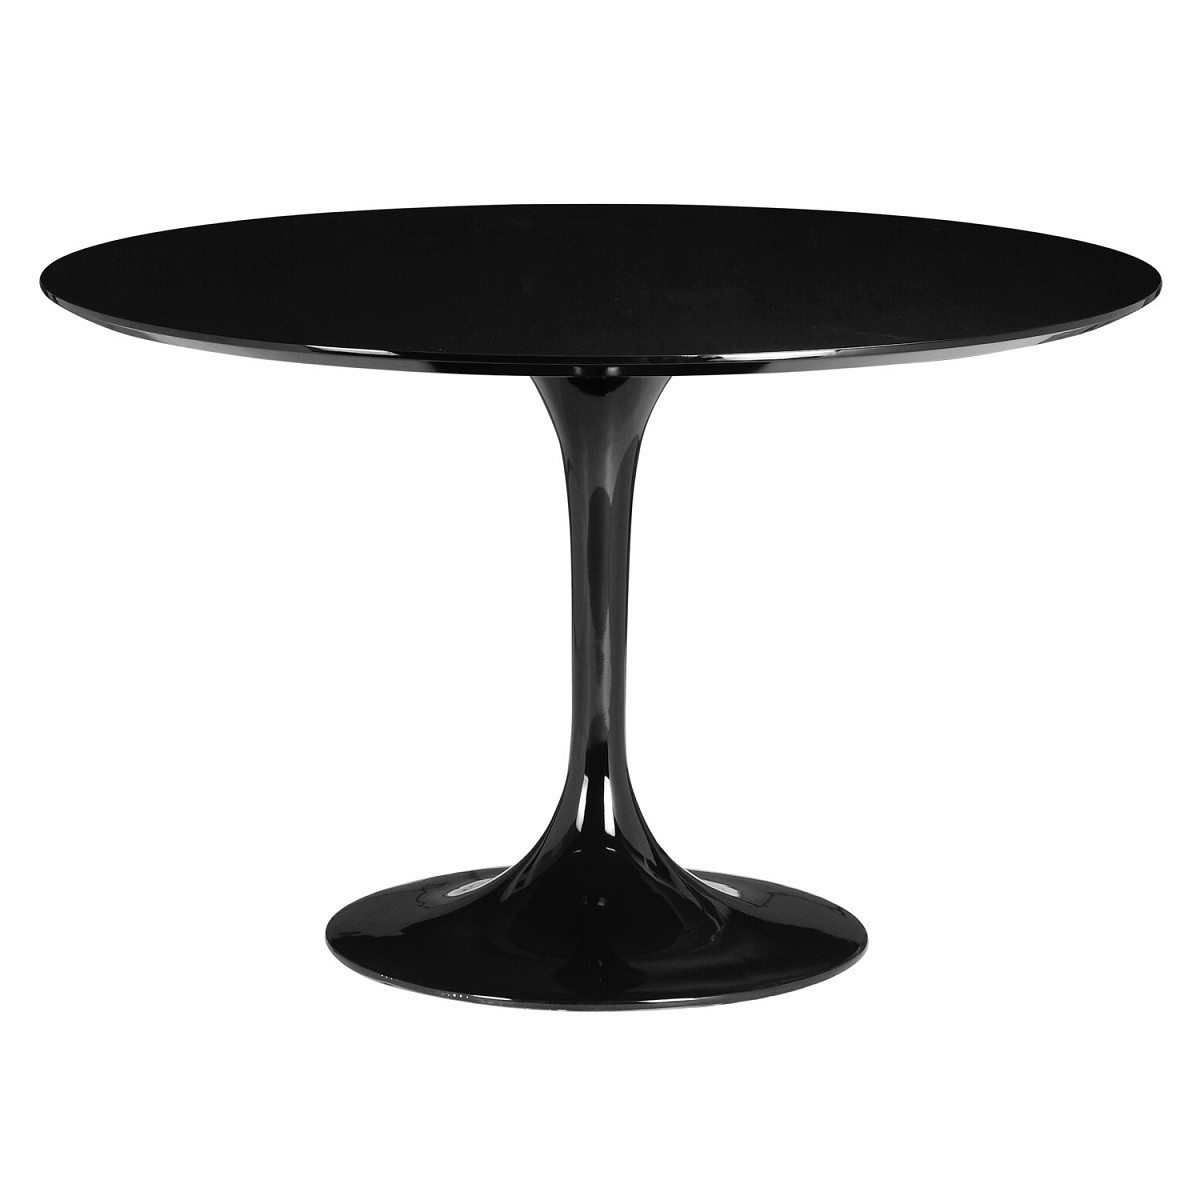 eero saarinen dining table tulip table 100cm design dining table. Black Bedroom Furniture Sets. Home Design Ideas